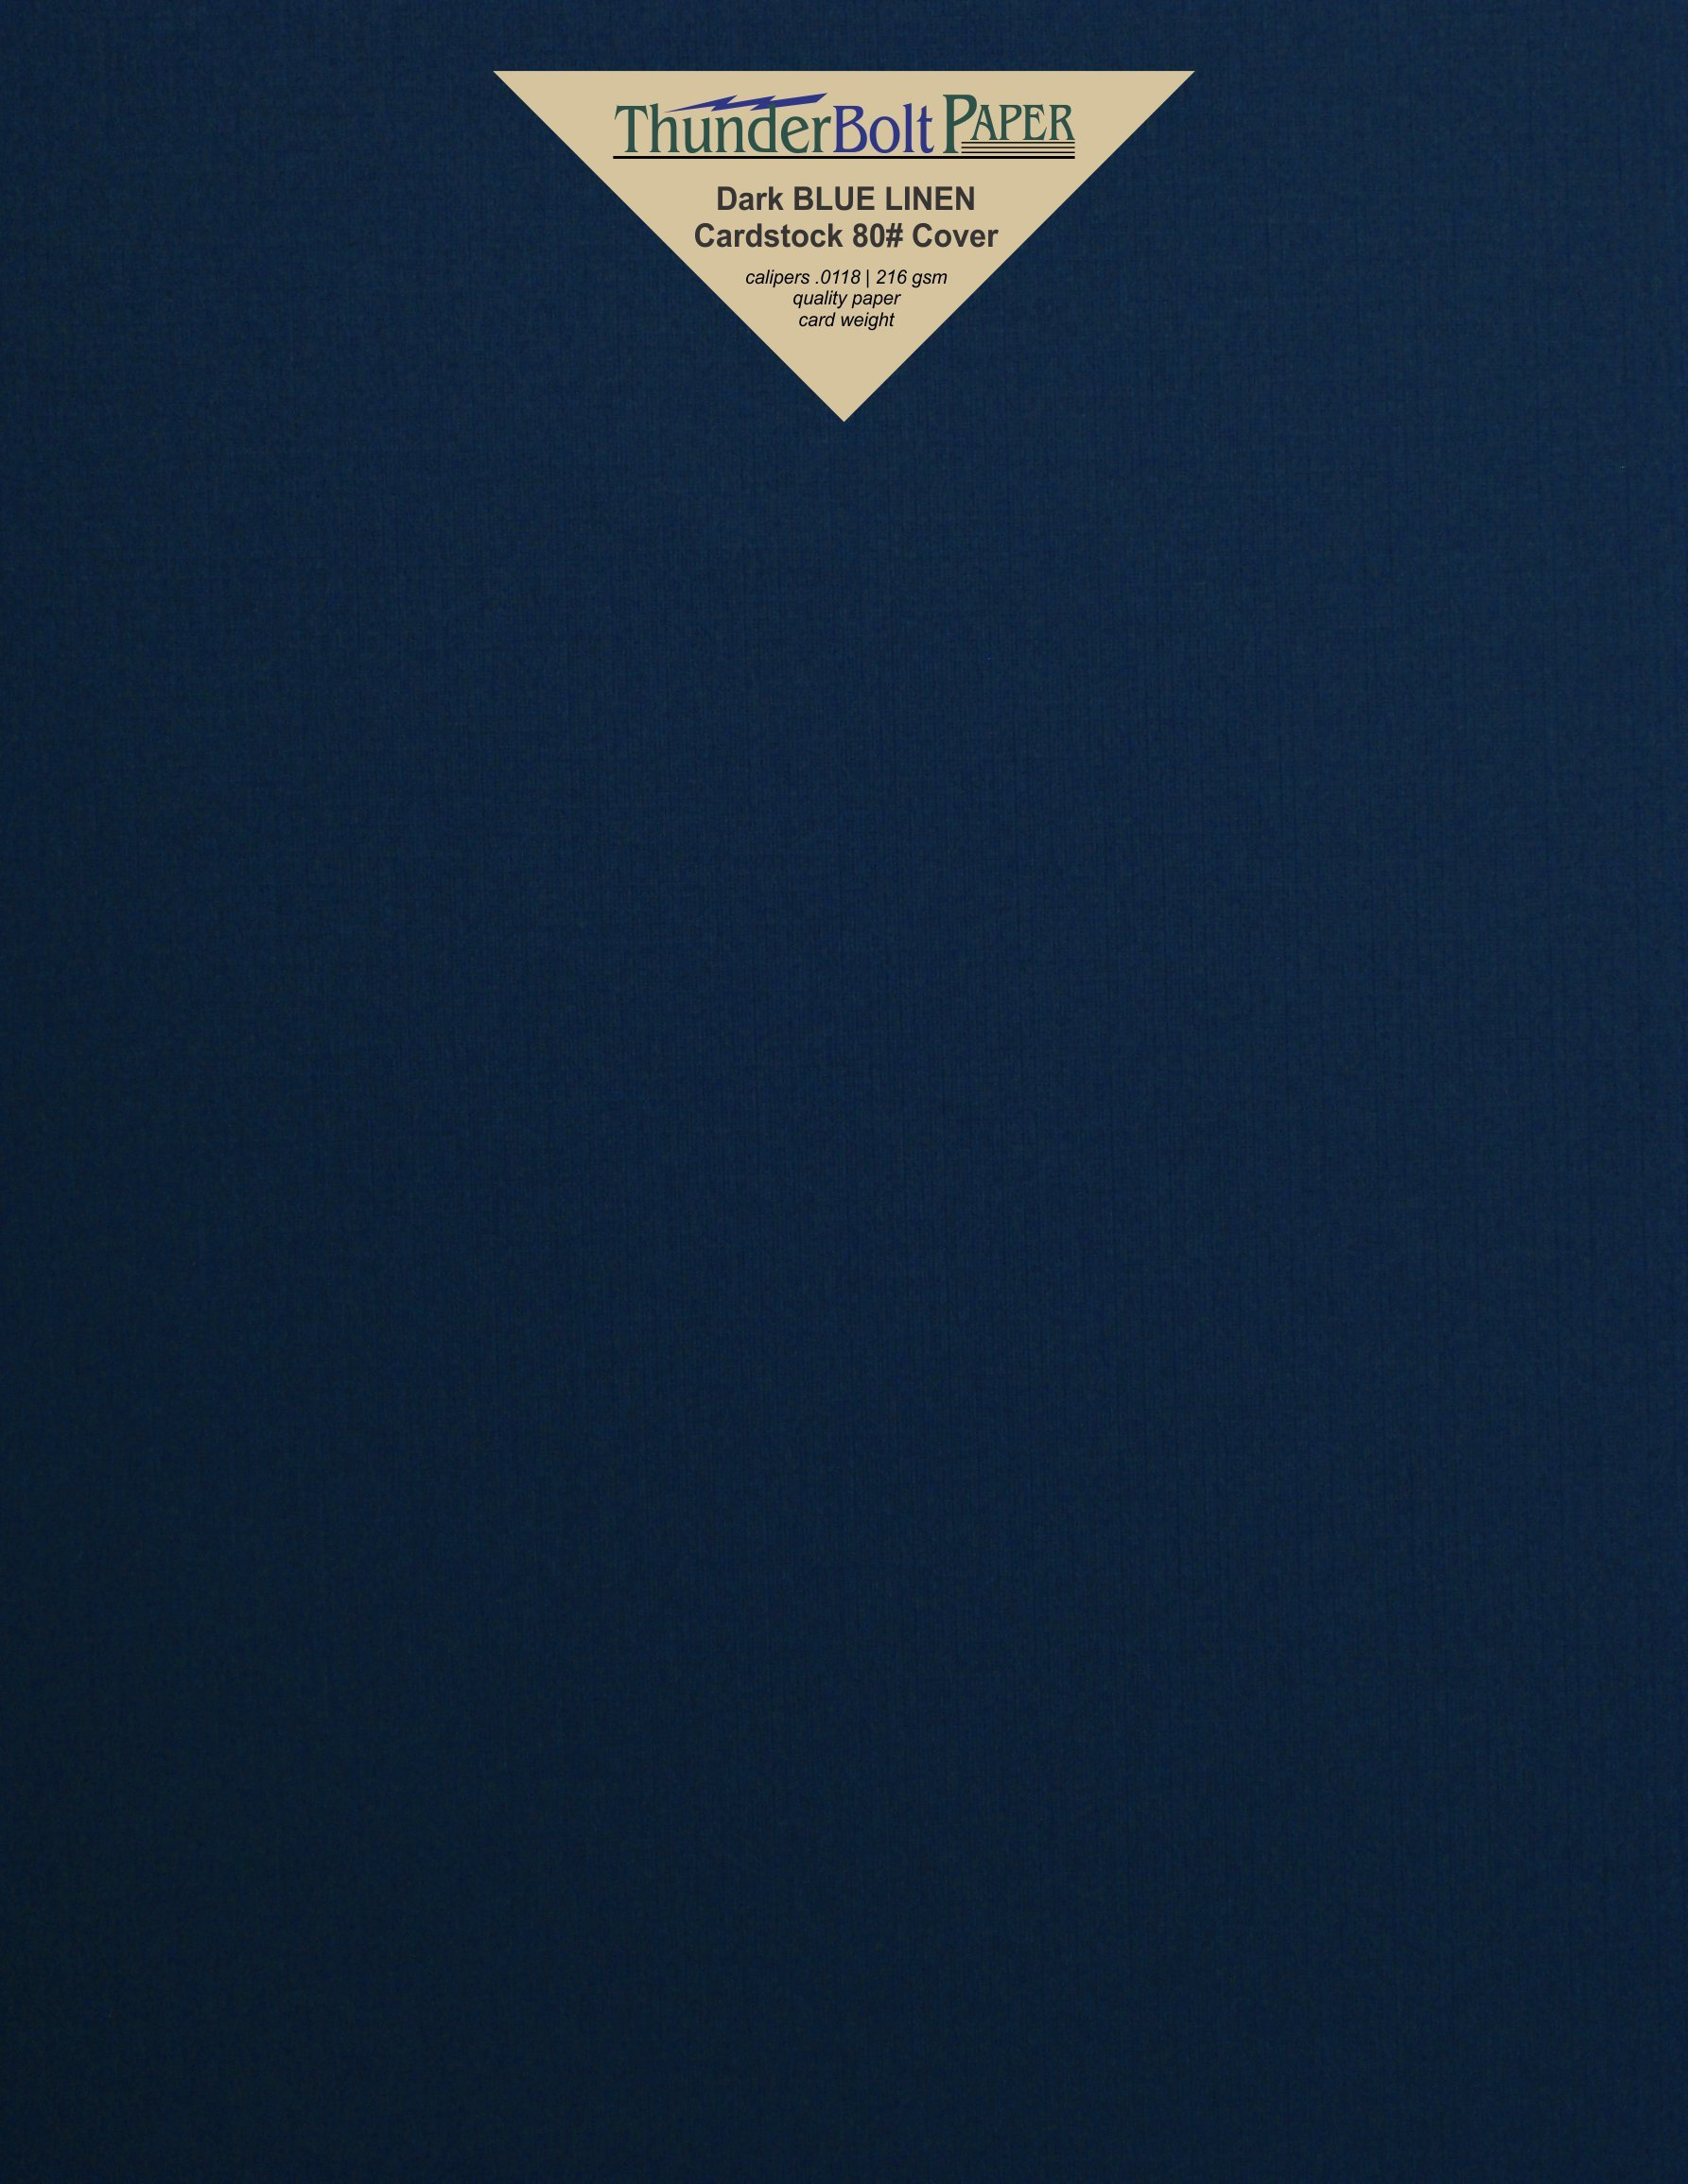 500 Dark Navy Blue Linen 80# Cover Paper Sheets - 8.5'' X 11'' (8.5X11 Inches) Standard Letter|Flyer Size - 80 lb/pound Card Weight - Fine Linen Textured Finish - Deep Dye Quality Cardstock